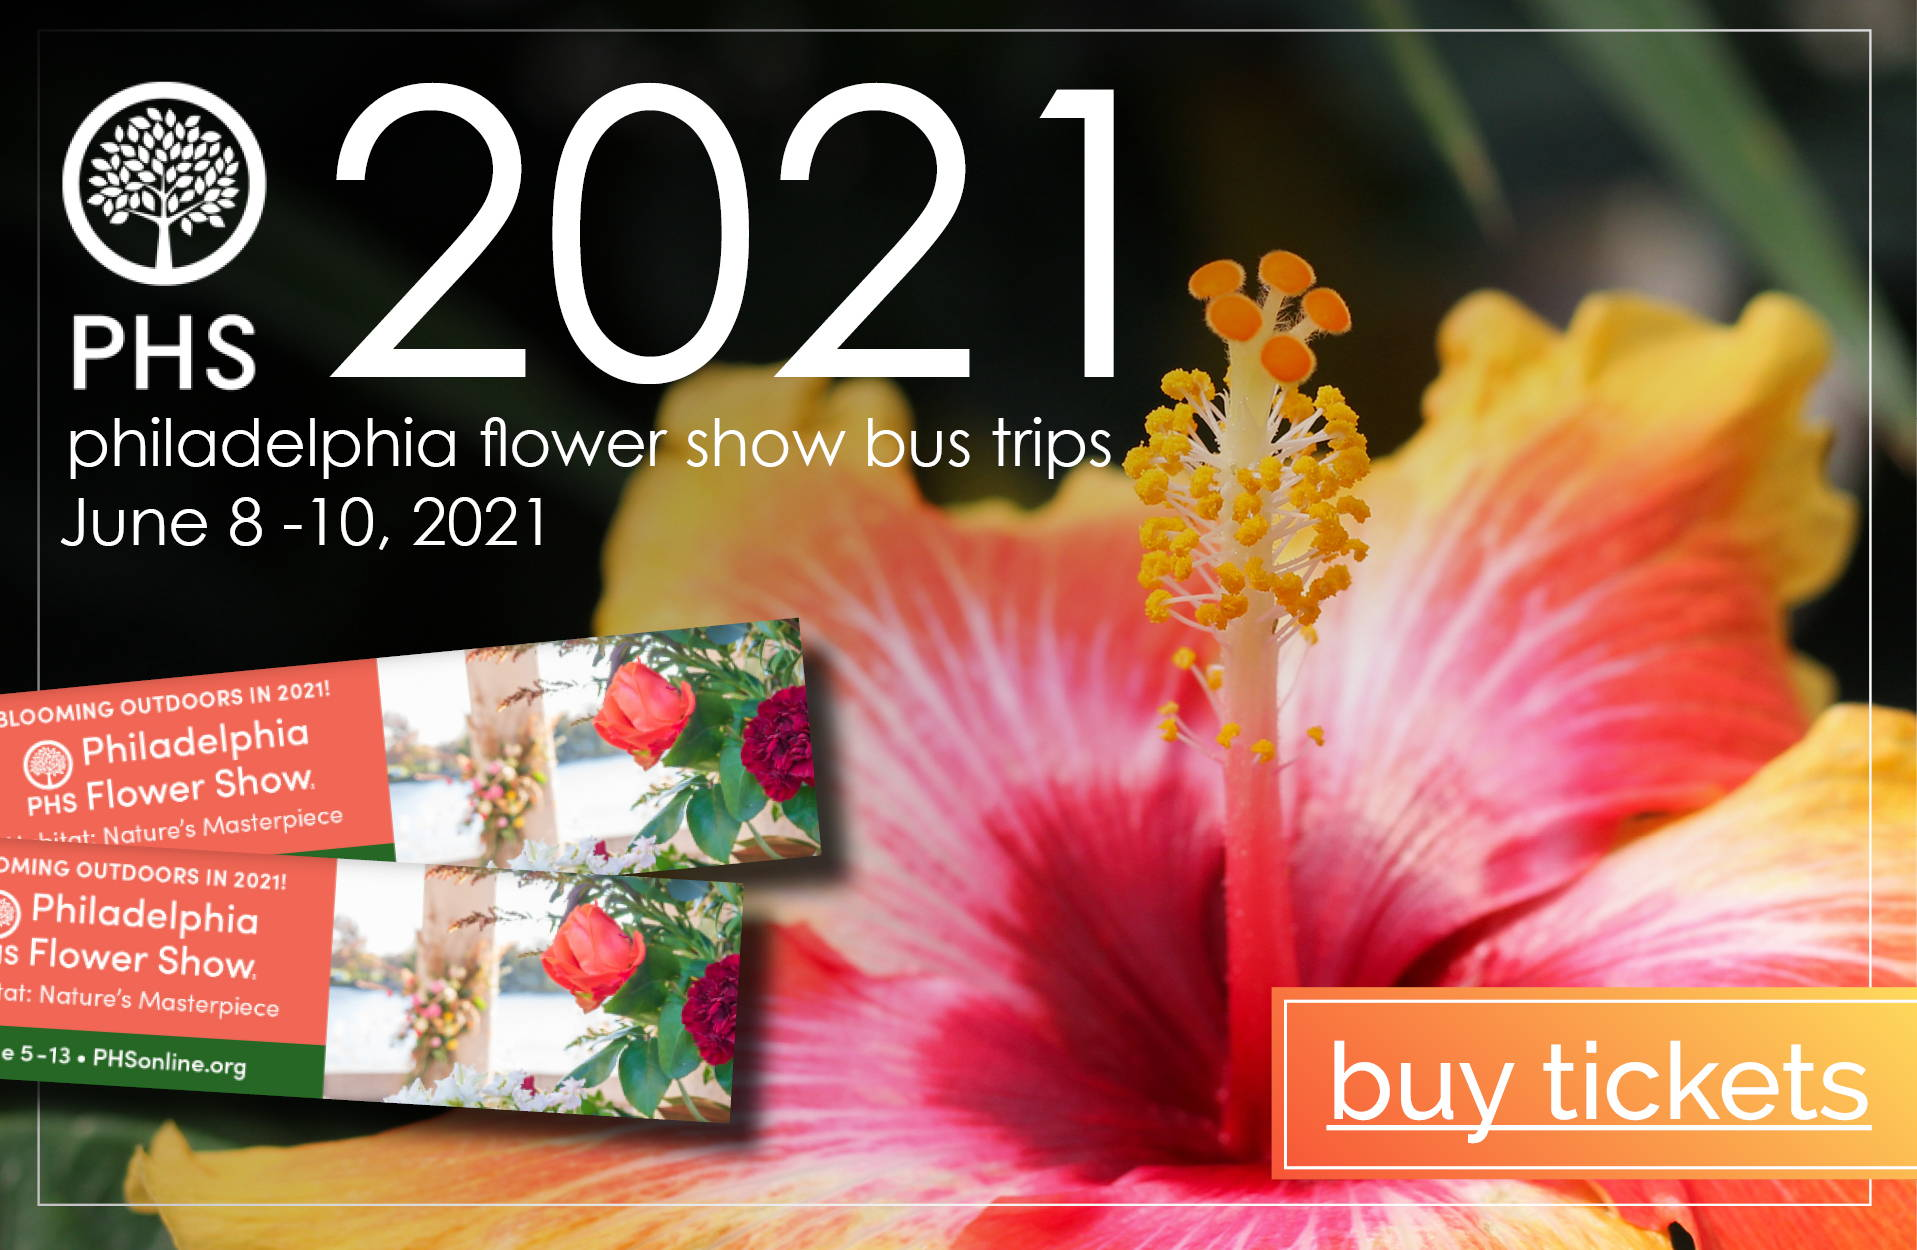 Philadelphia Flower Show Bus Trips | Buy Tickets